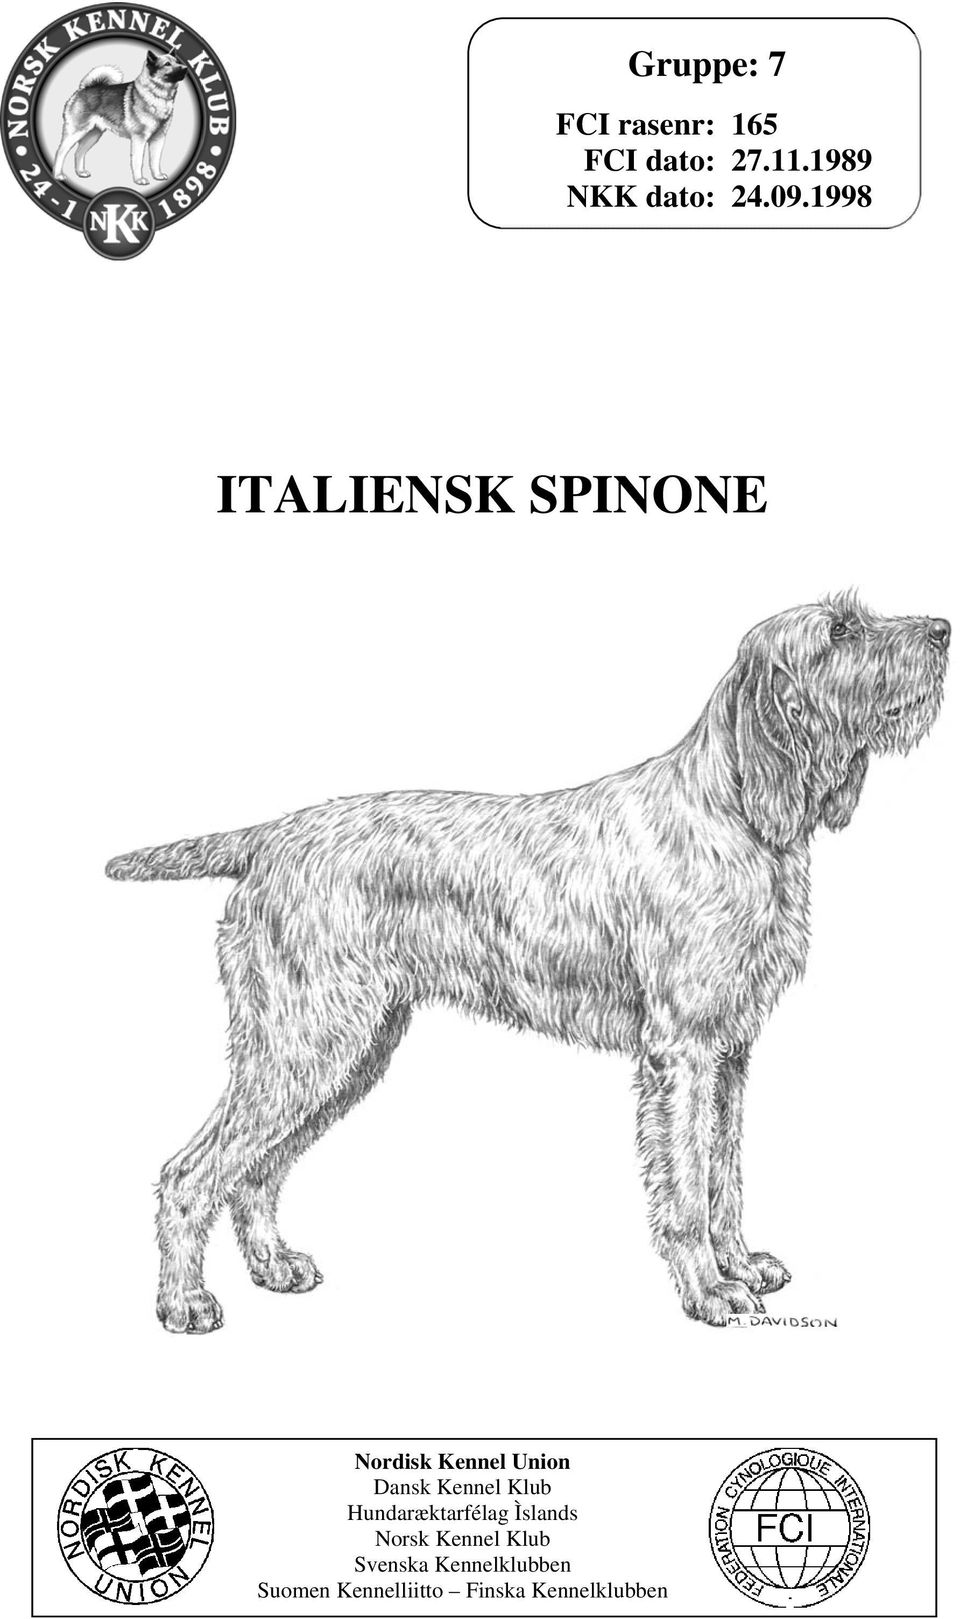 1998 ITALIENSK SPINONE Nordisk Kennel Union Dansk Kennel